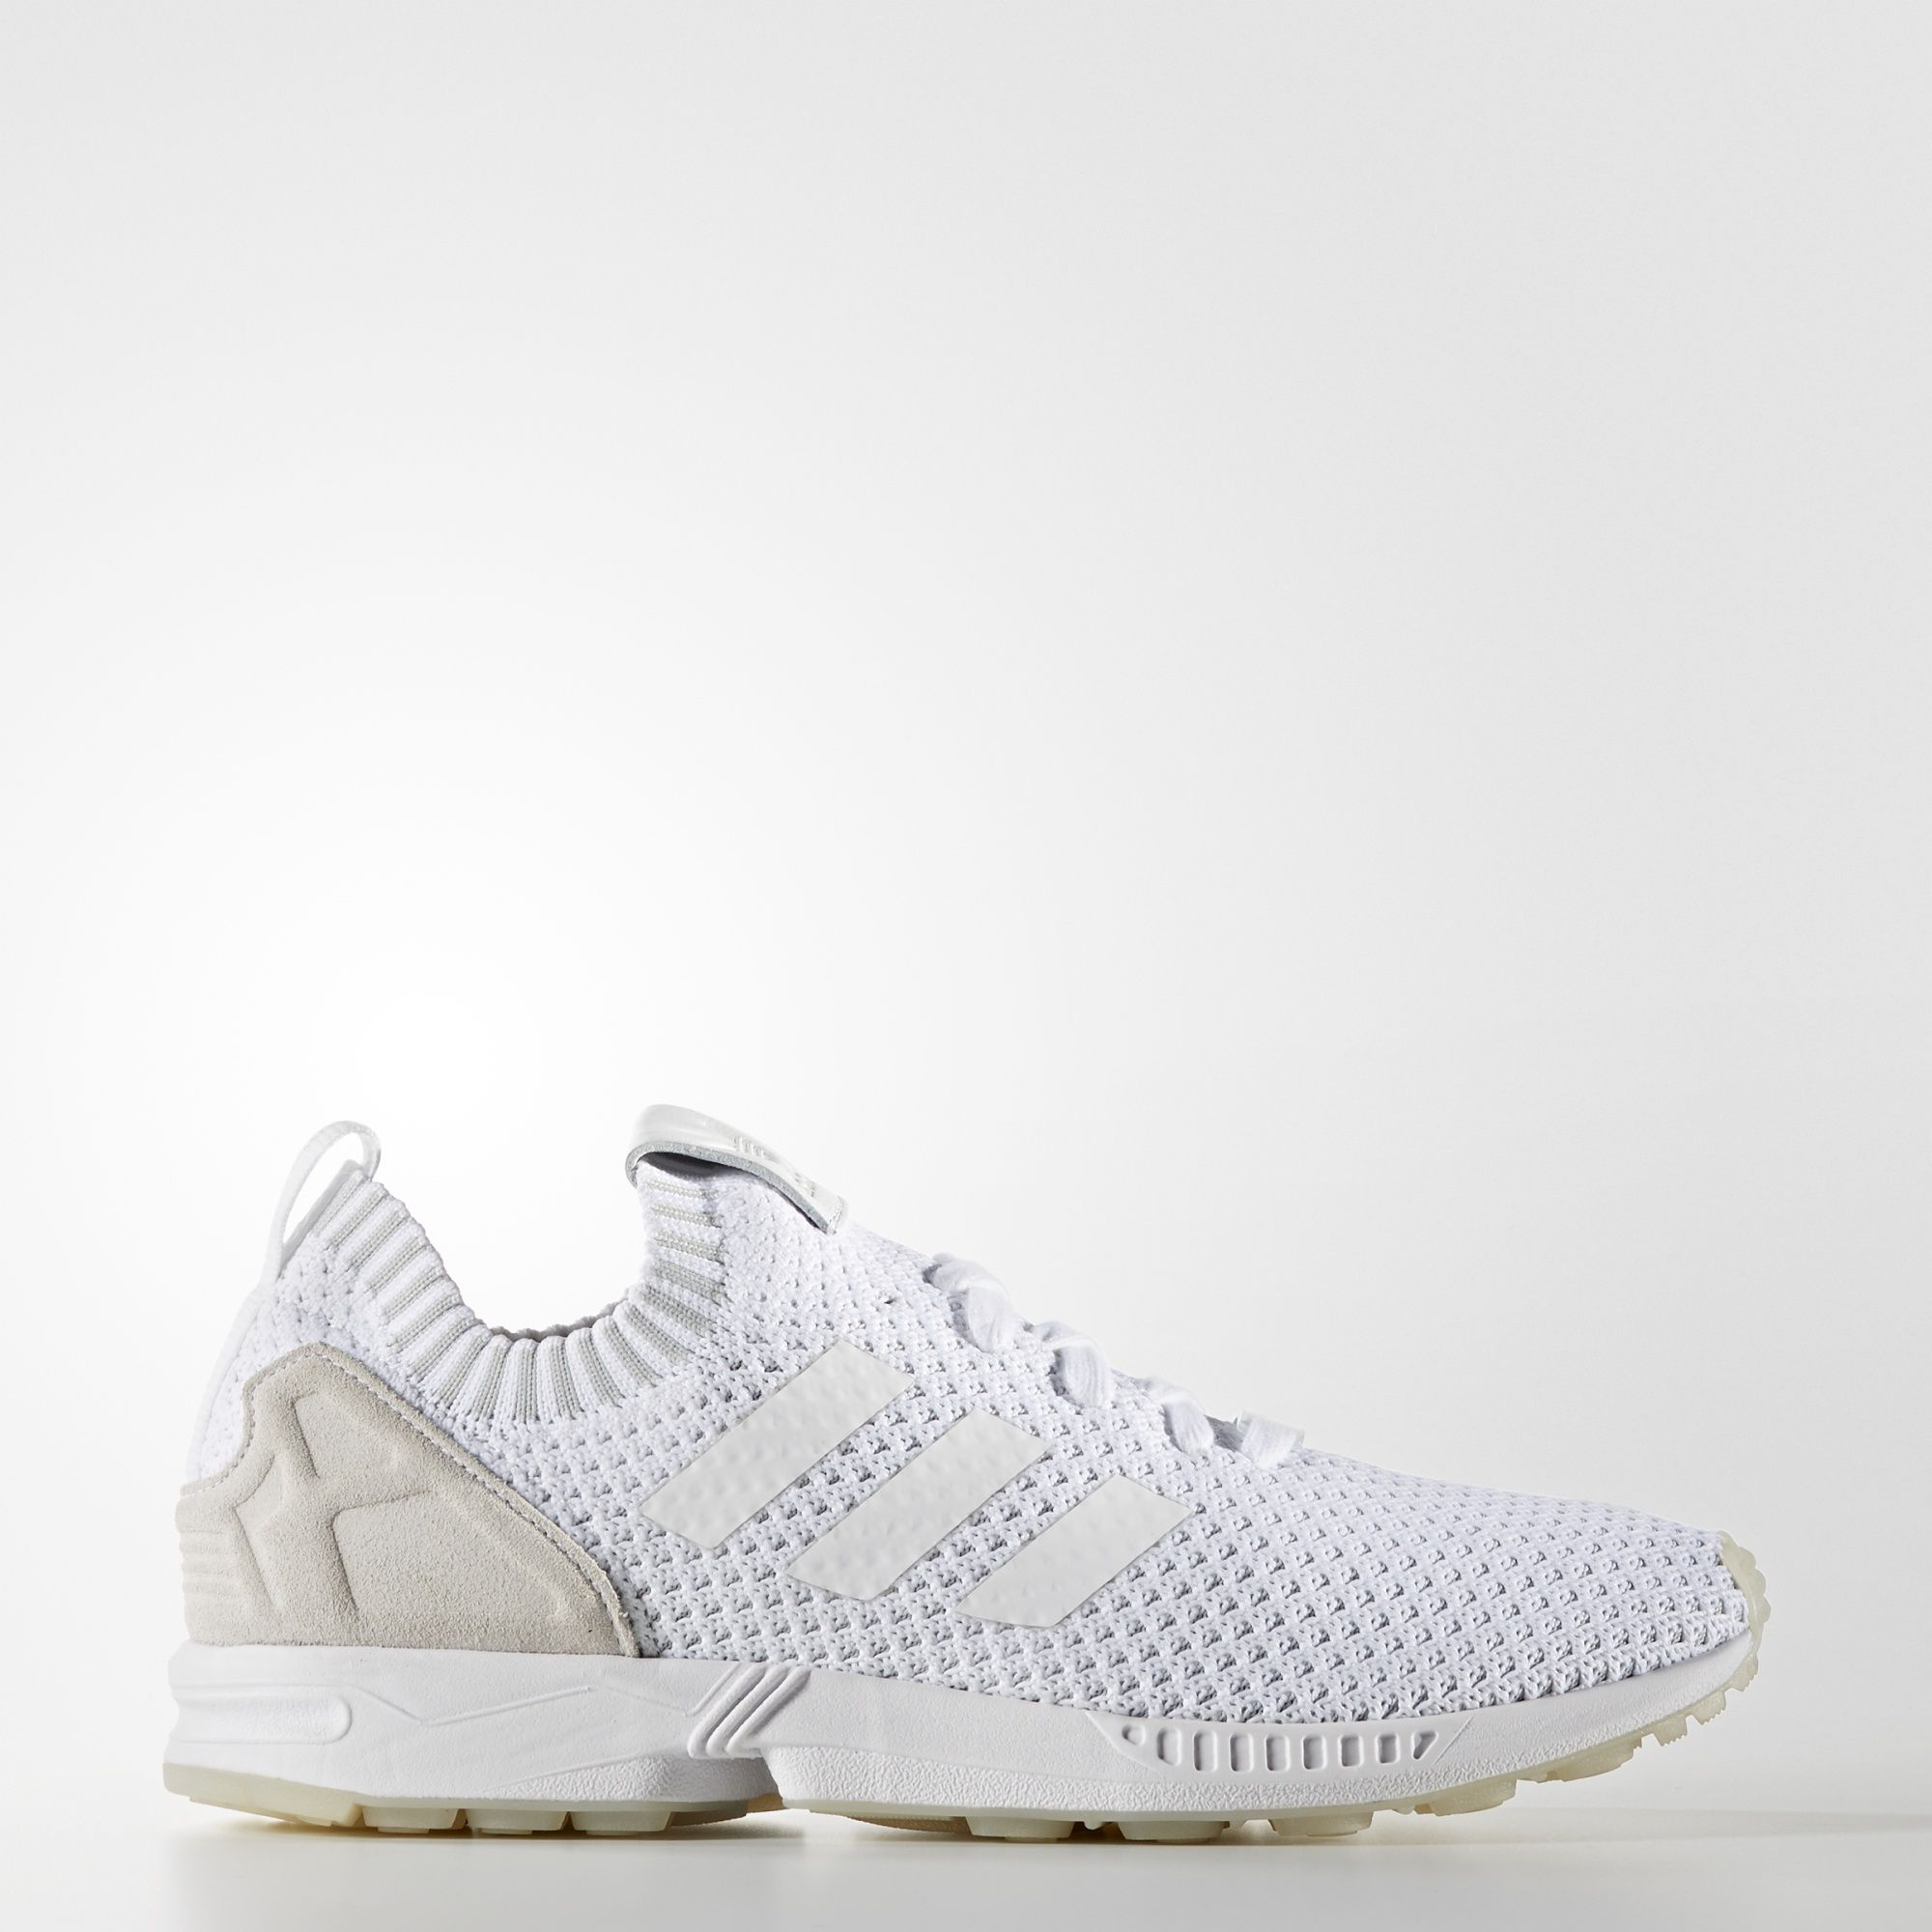 adidas originals zx flux triple white